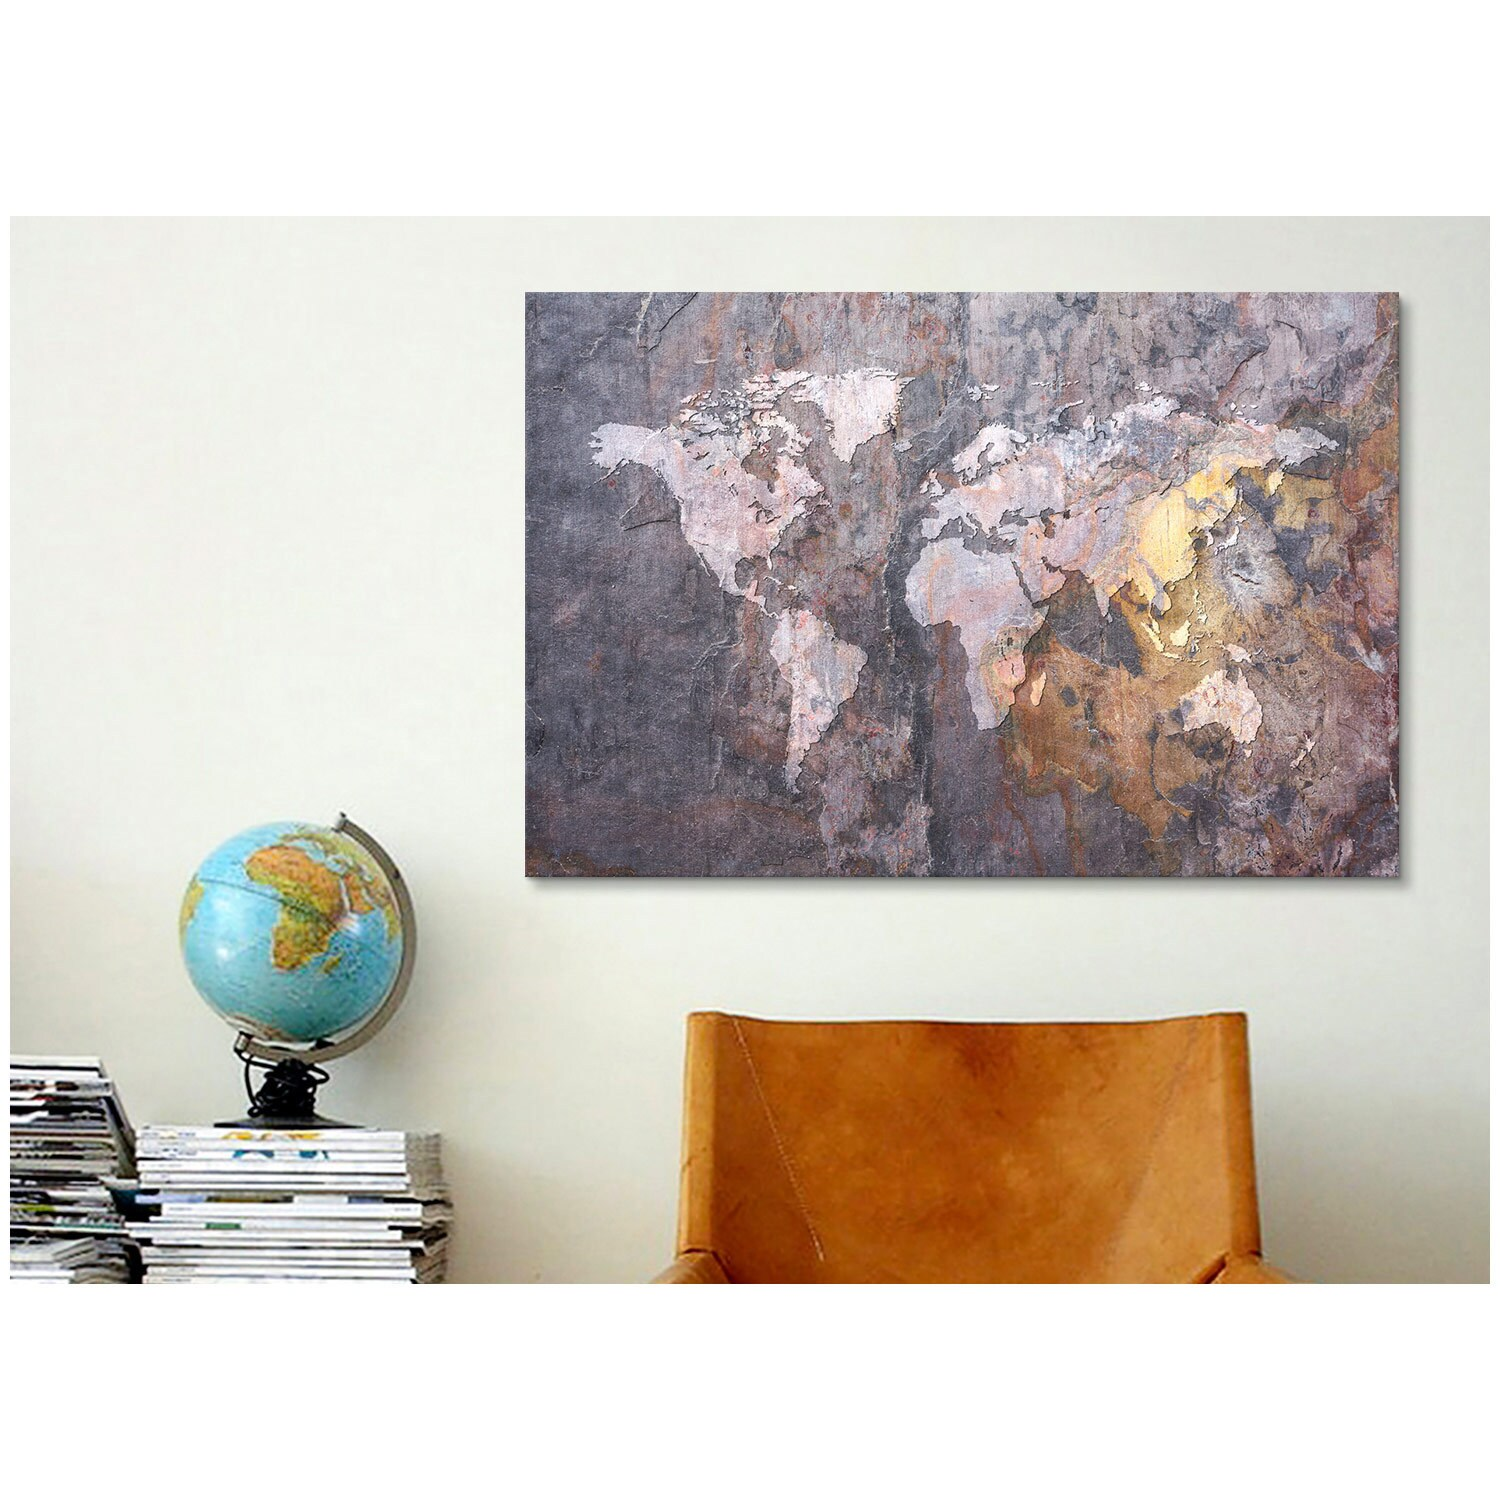 Icanvas michael thompsett world map on stone background canvas print icanvas michael thompsett world map on stone background canvas print wall art free shipping today overstock 16811819 gumiabroncs Gallery